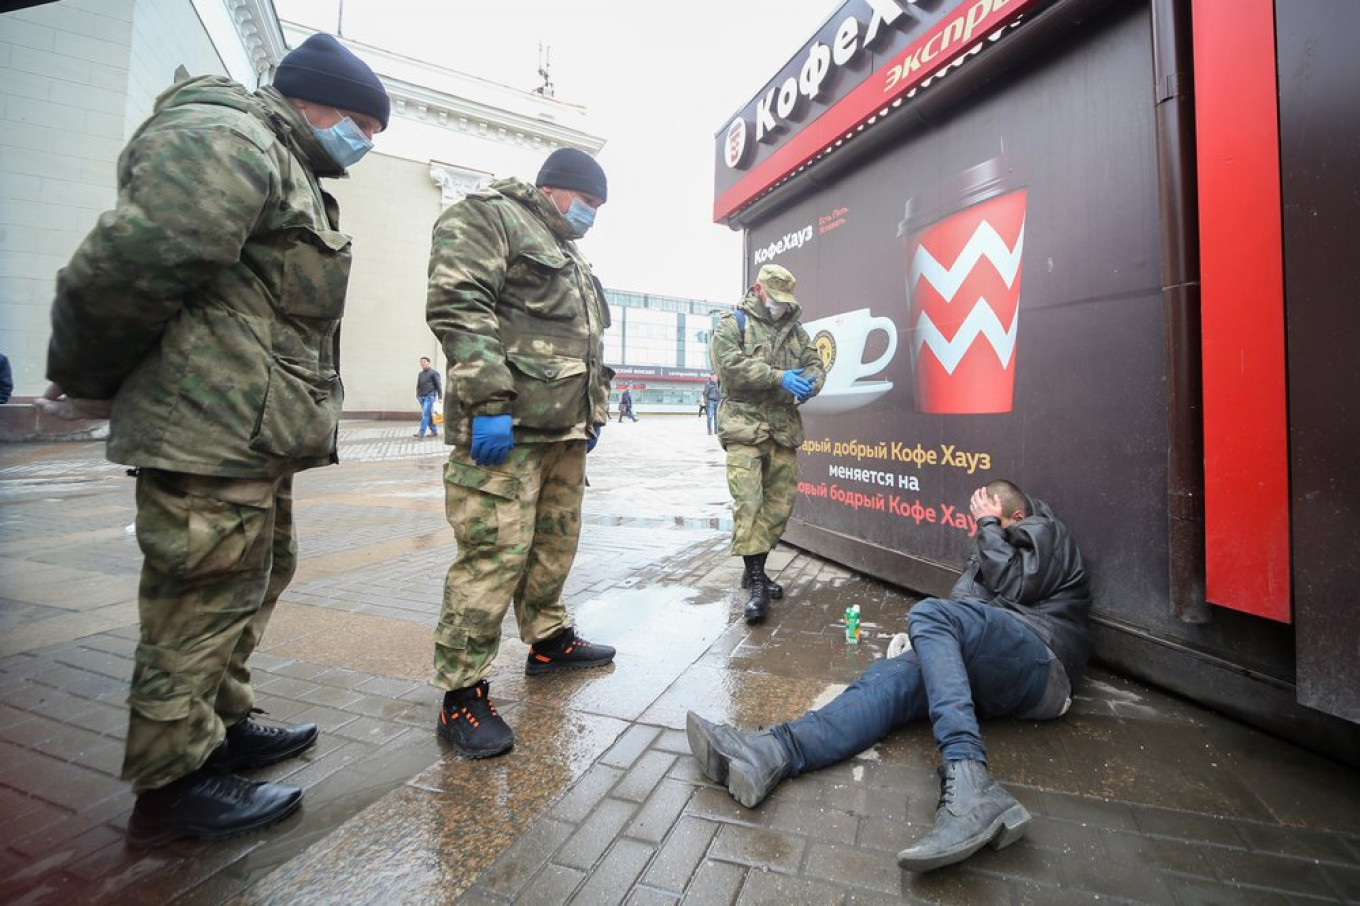 Police reportedly arrested a homeless man.				 				Sergei Vedyashkin / Moskva News Agency